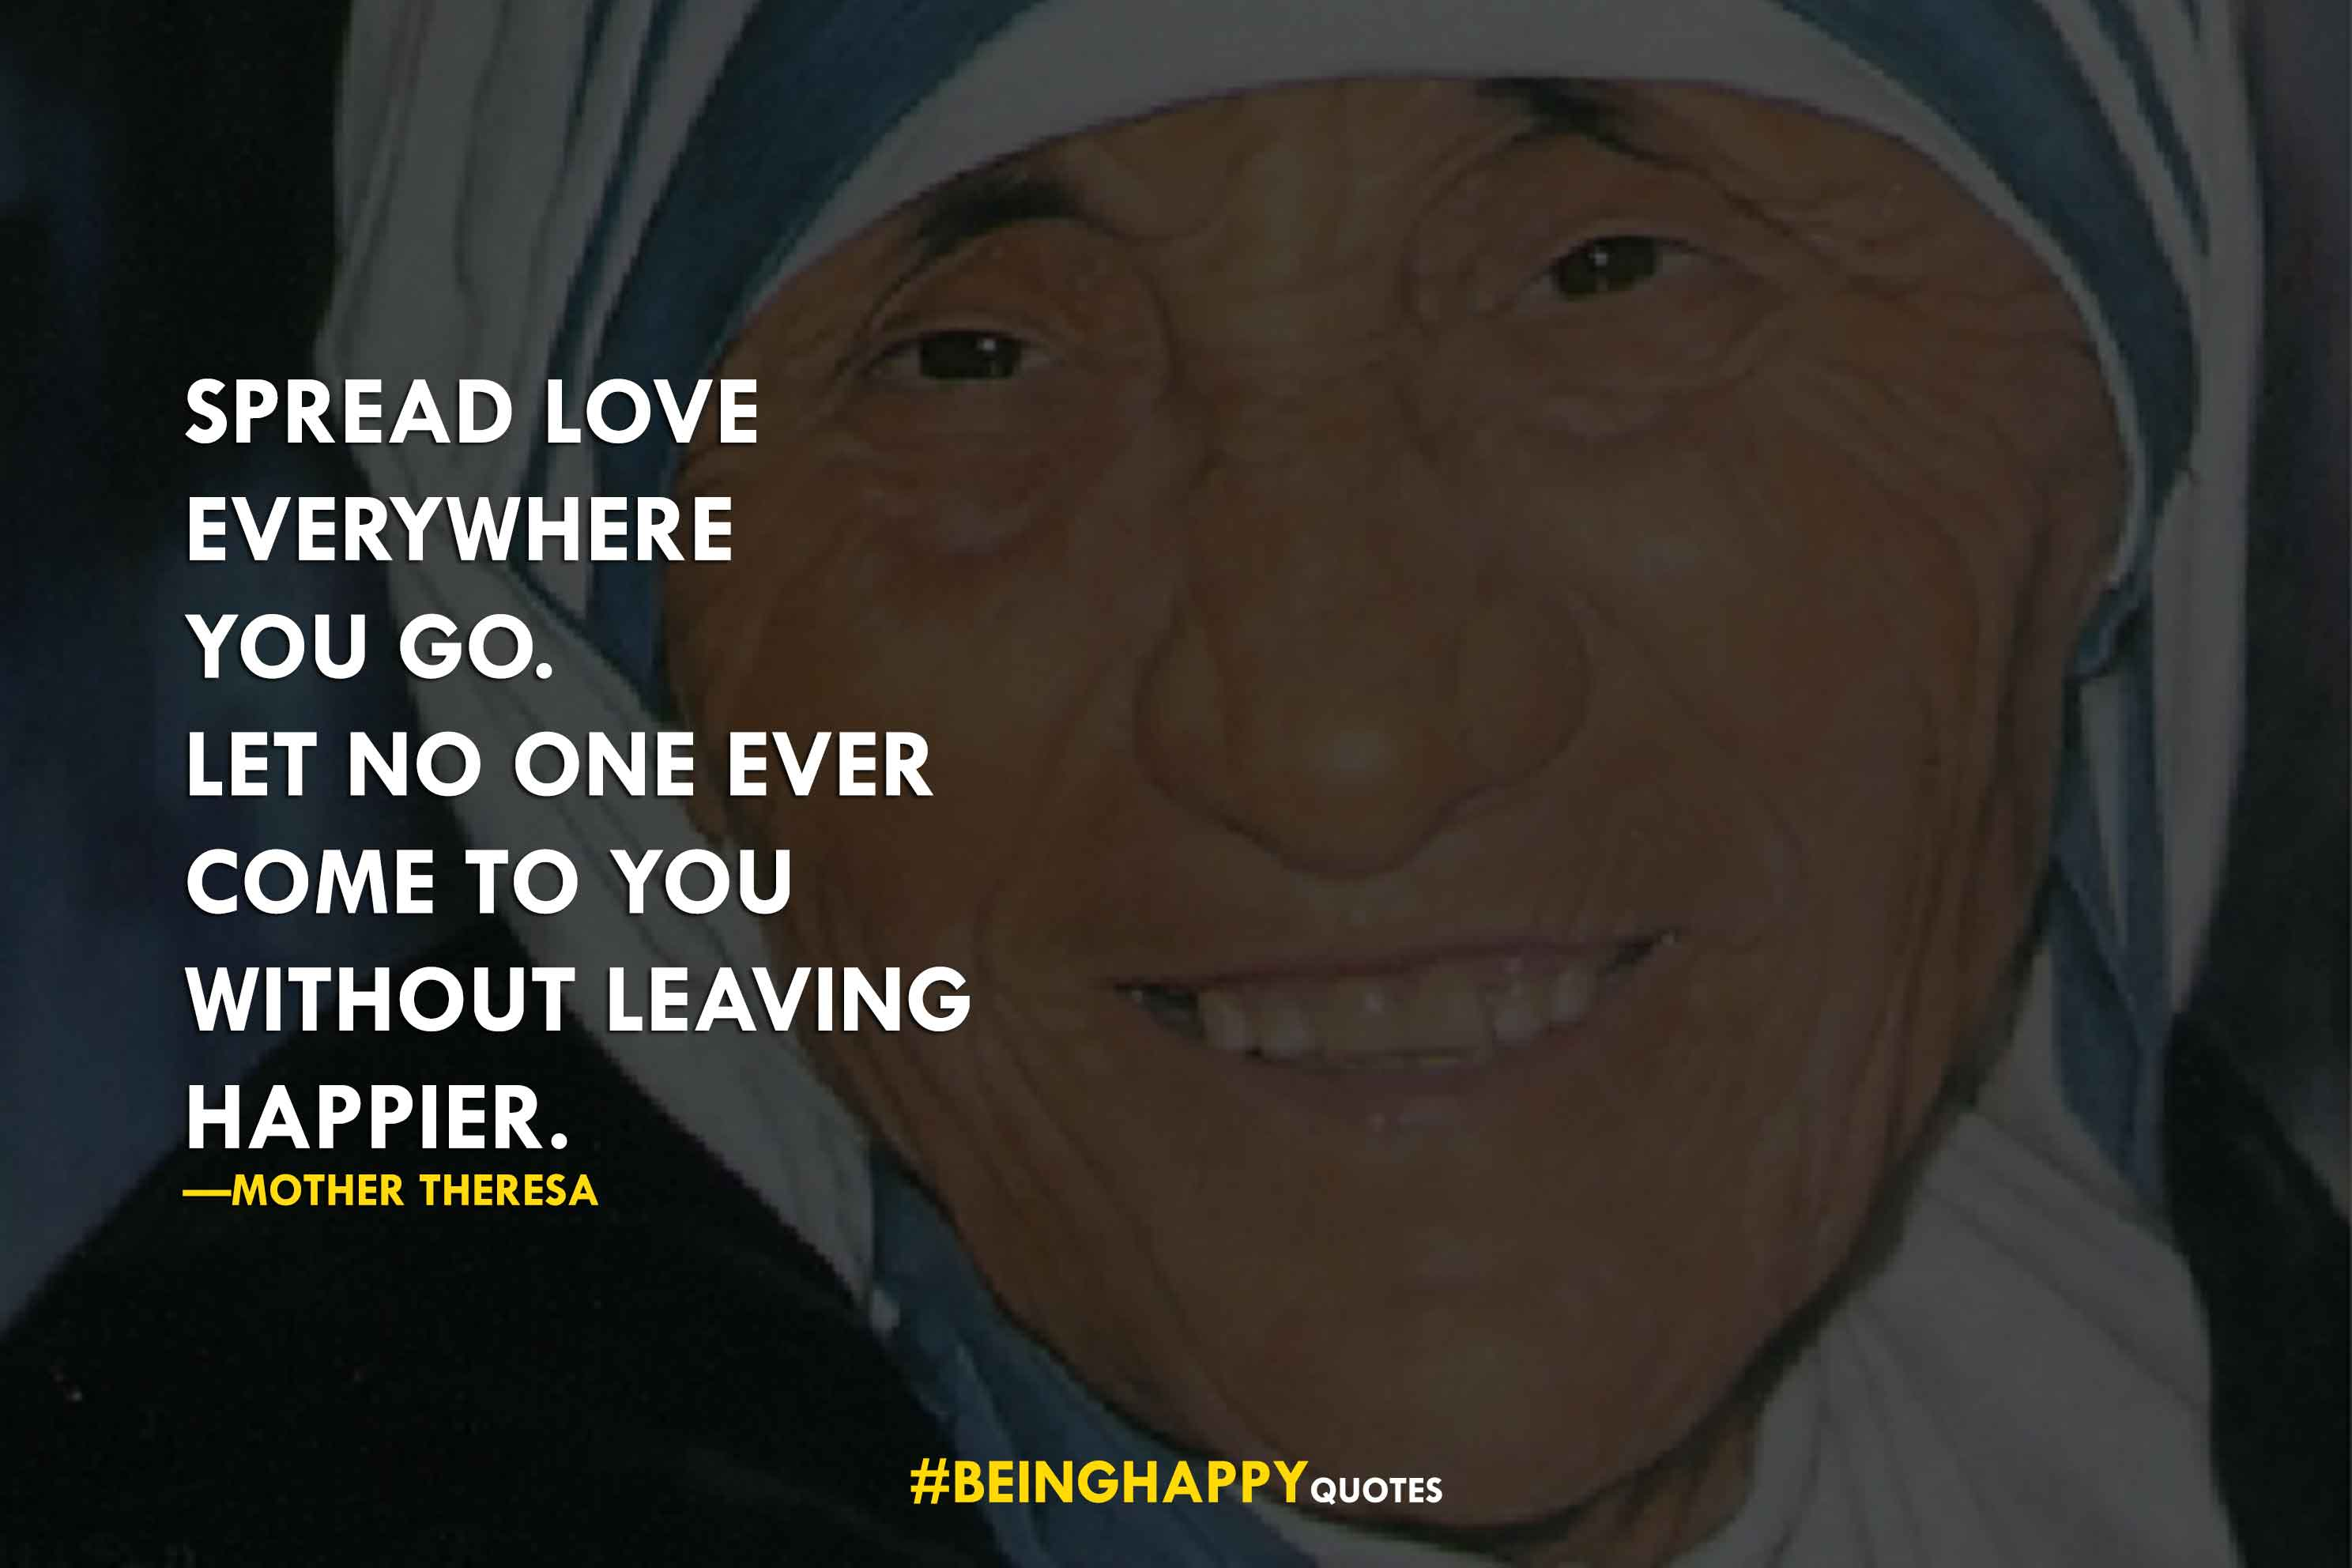 Spread love everywhere you go. Let no one ever come to you without leaving happier. —Mother Theresa